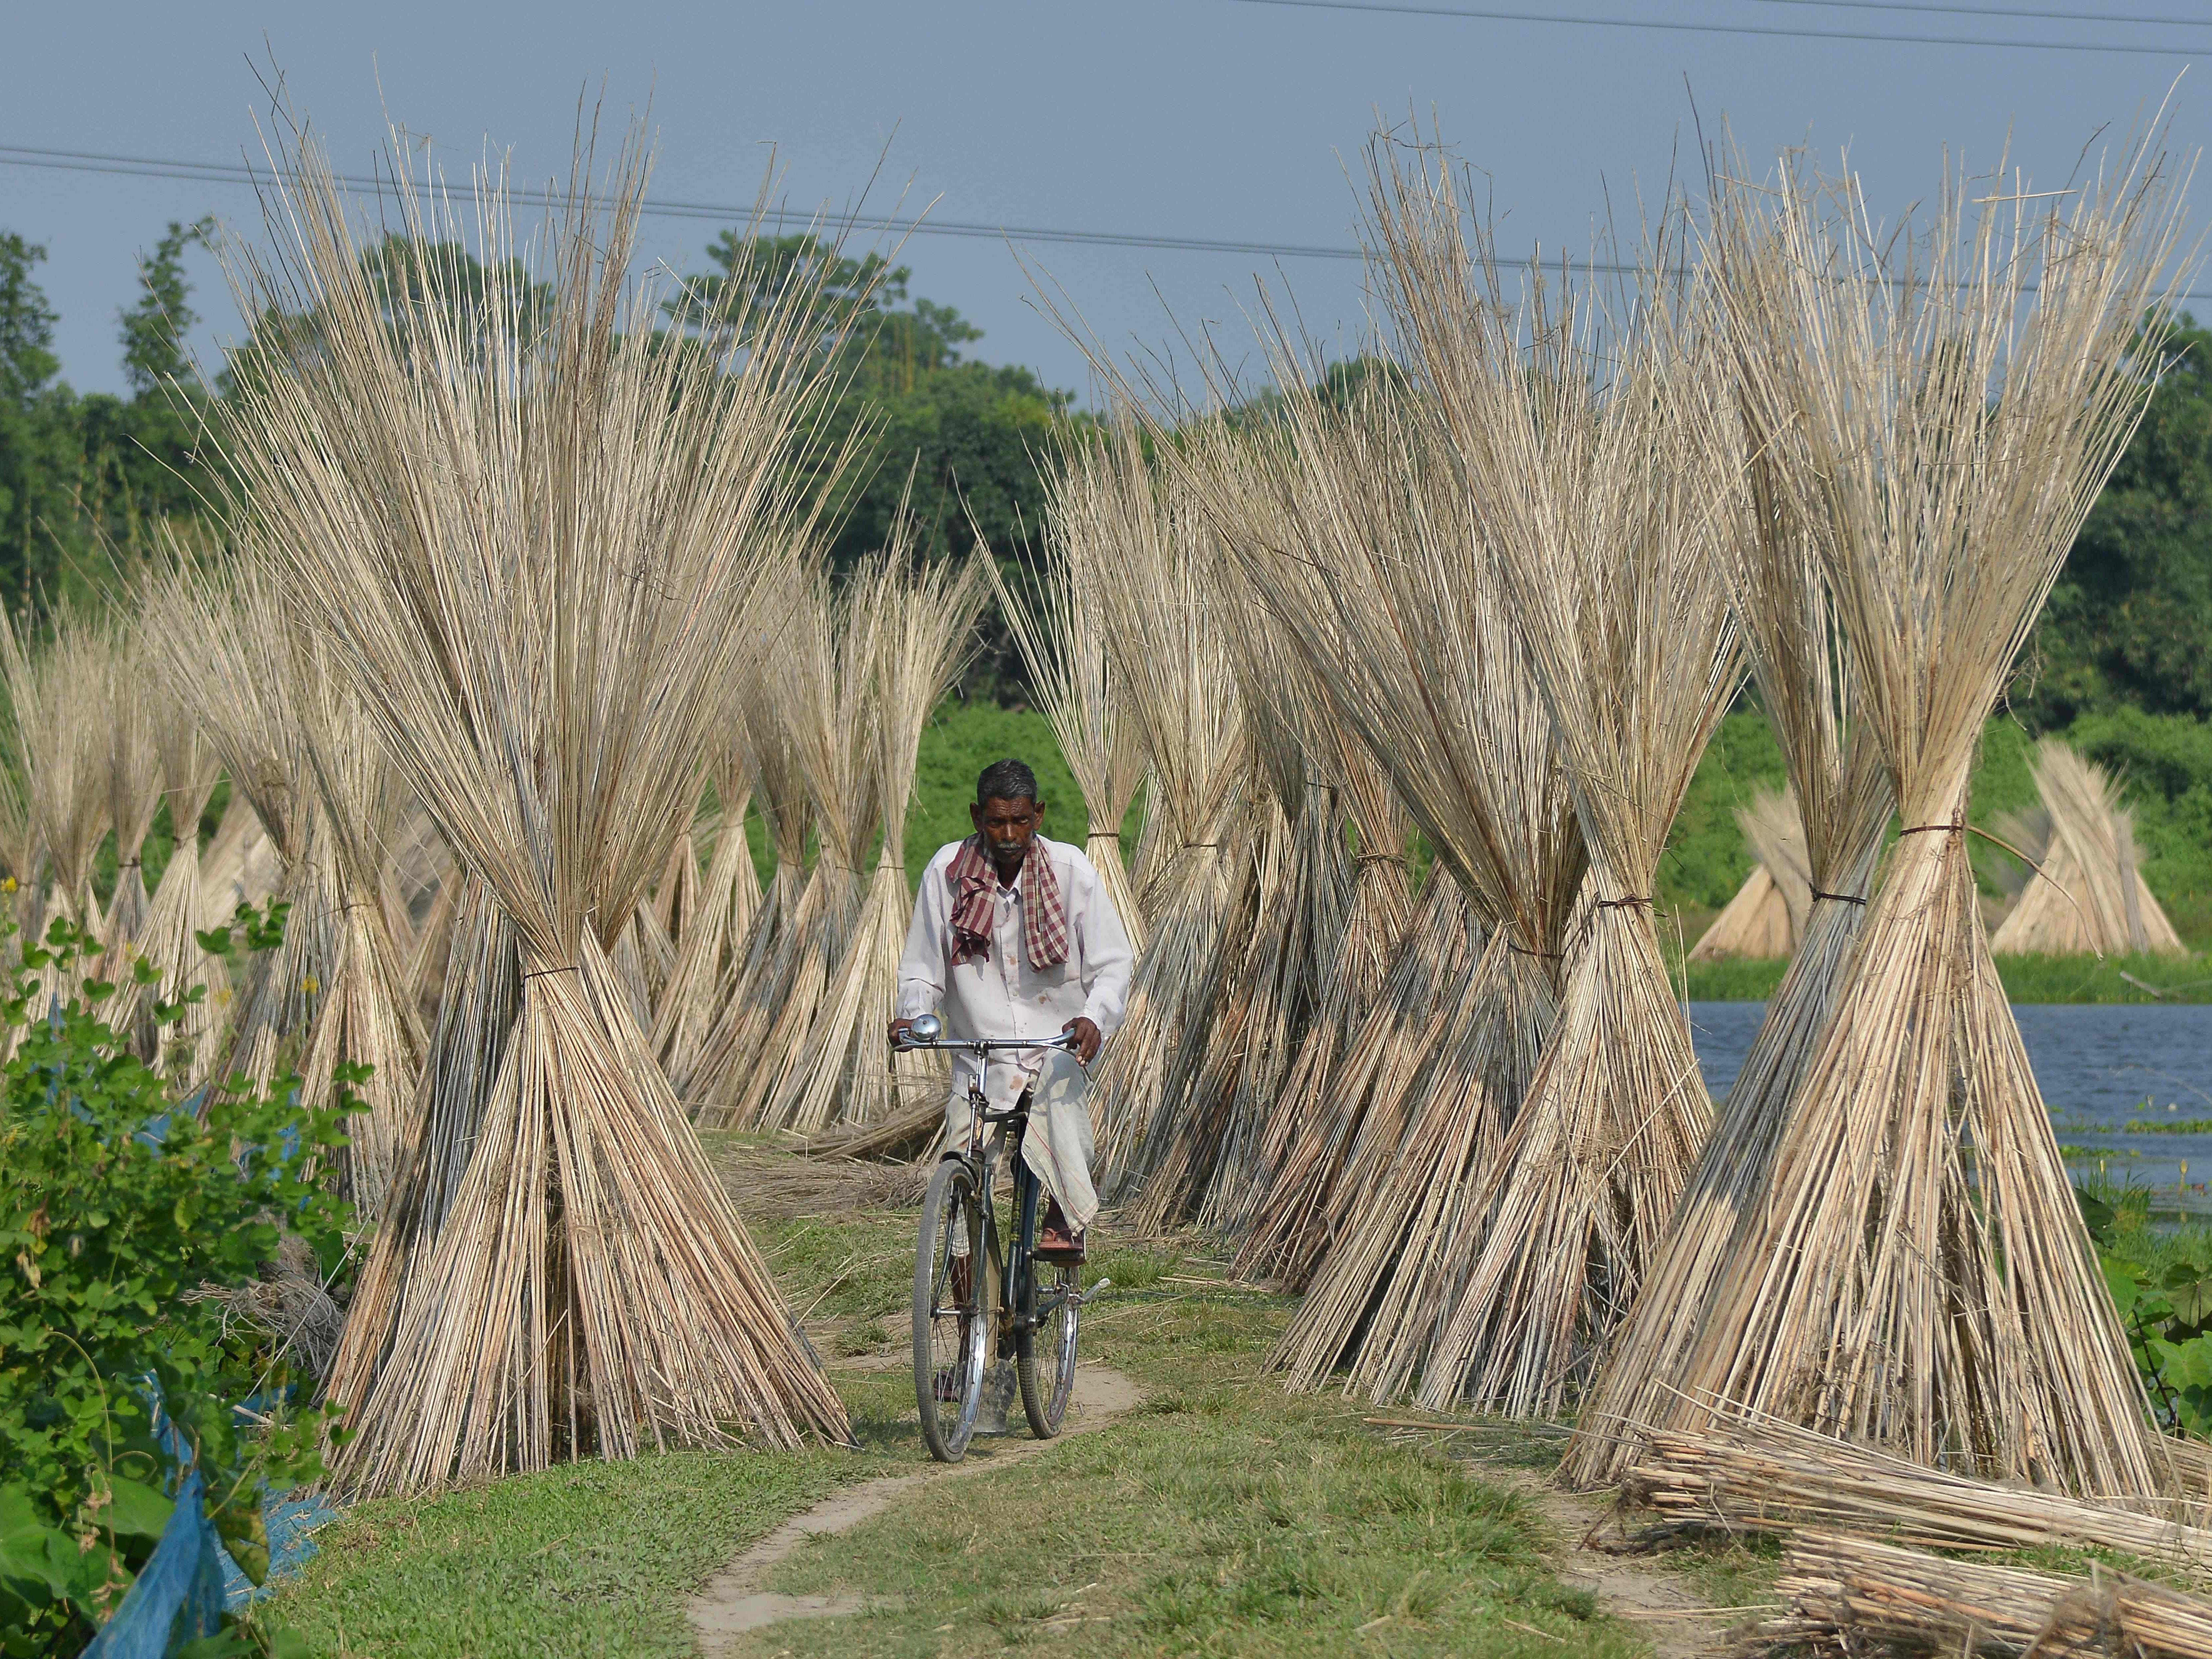 An Indian villager rides his bicycle past jute sticks, a fiber that can be spun into coarse strong threads, at Dolapani village in Sonitpur district in India's northeastern state of Assam, October 8, 2018.